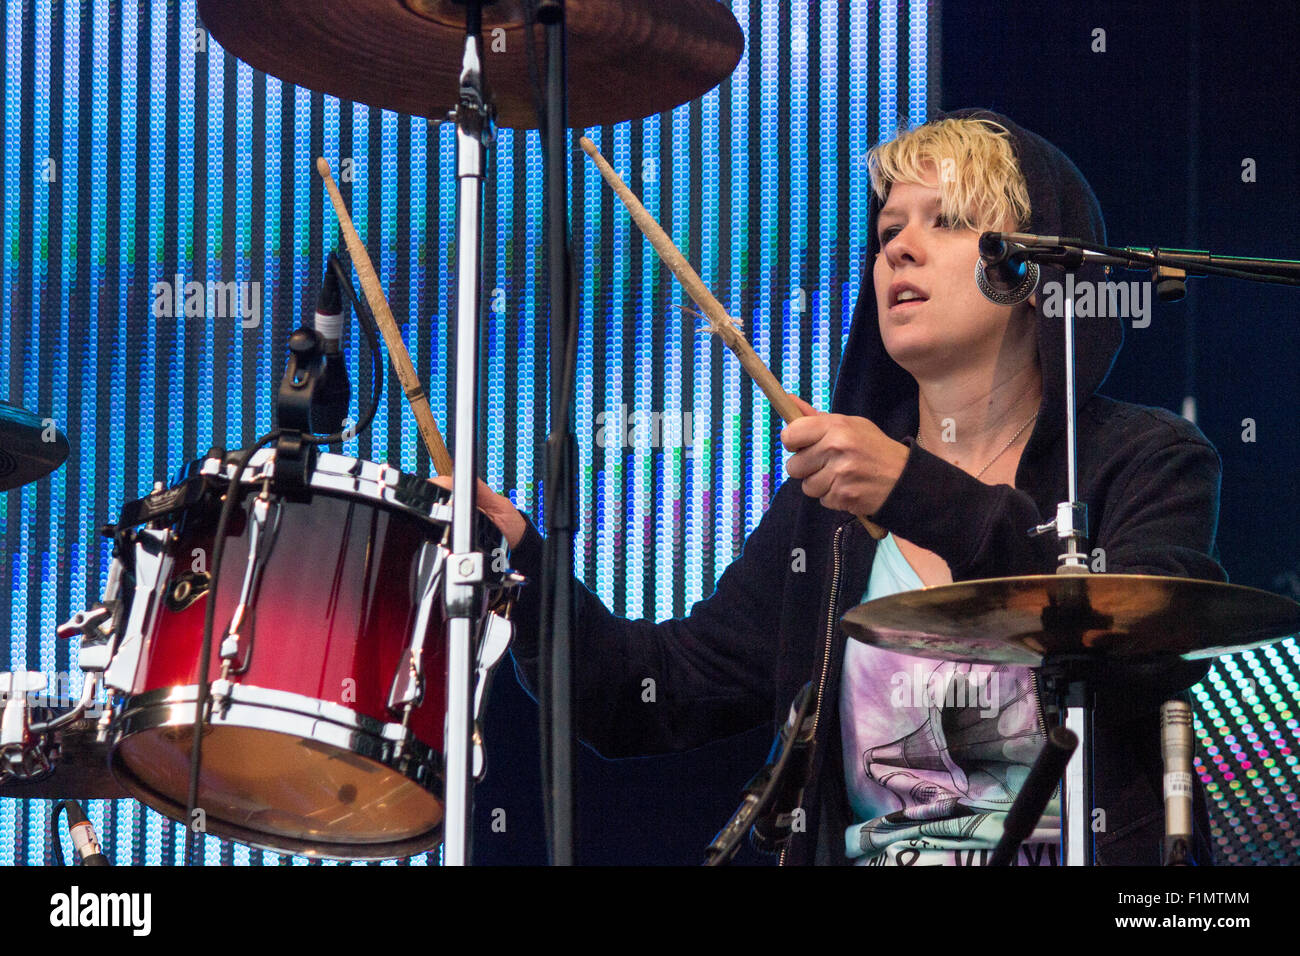 Cat Myers of Honeyblood drumming at Victorious Festival 2015 with hood up. - Stock Image